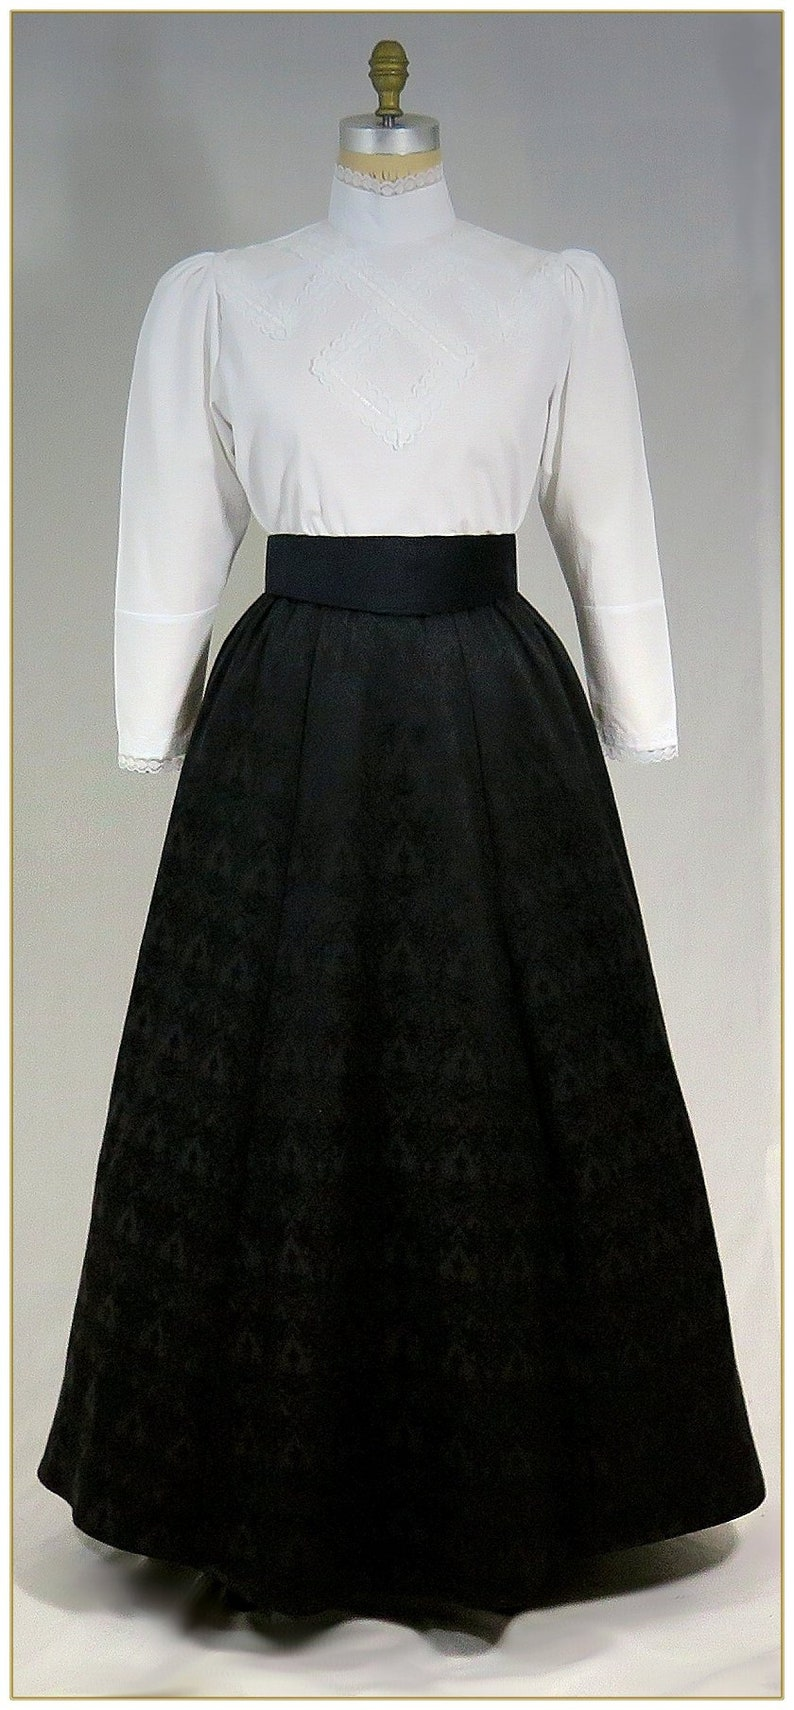 1900-1910s Clothing 1890-1905 Victorian Black Jacquard Skirt $68.00 AT vintagedancer.com